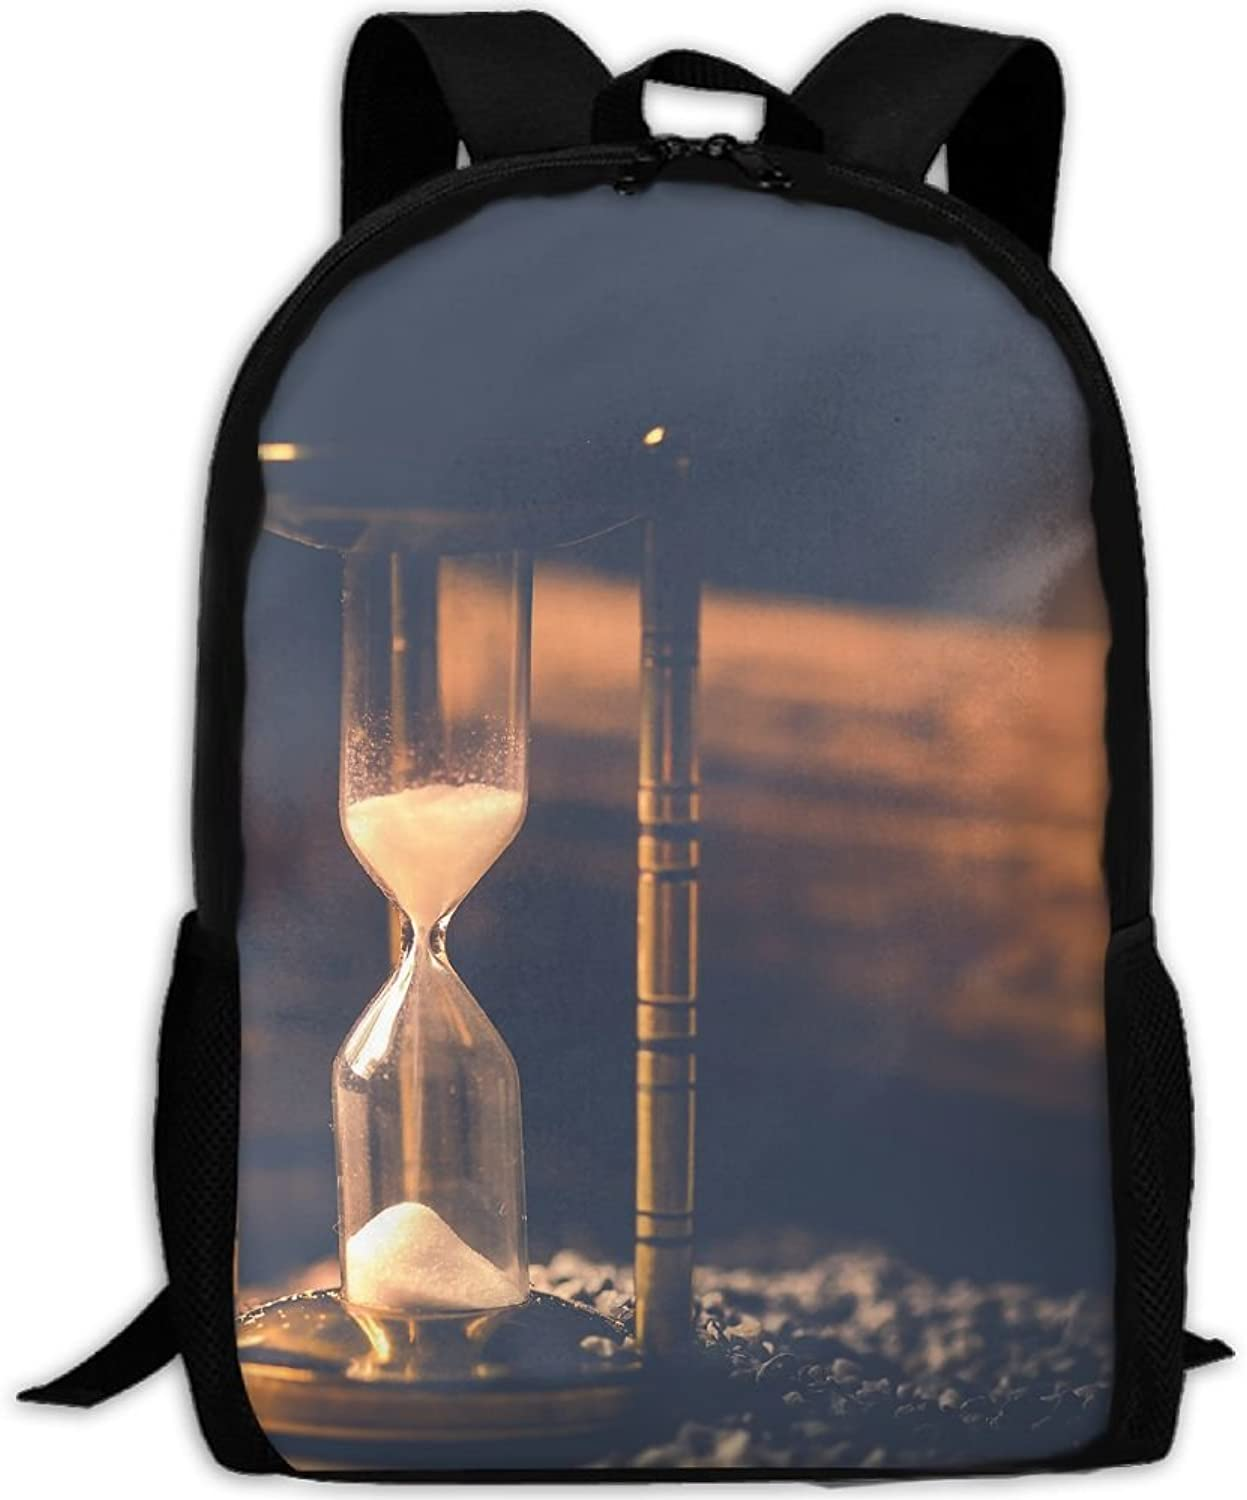 Adult Backpack Time Funnel Hourglass College Daypack Oxford Bag Unisex Business Travel Sports Bag with Adjustable Strap